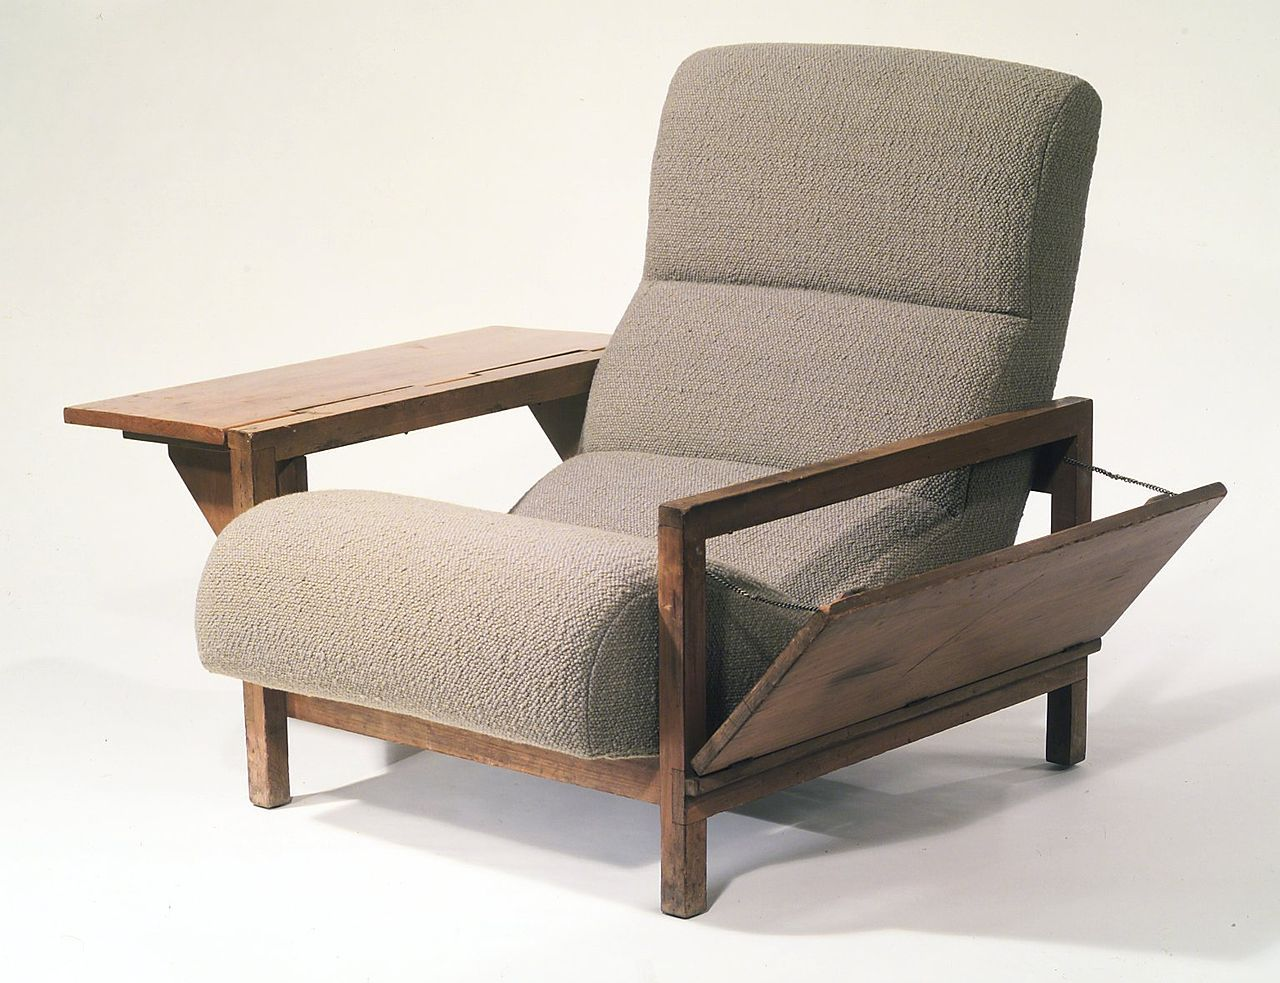 Russel wright armchair statton designed 1950 russel wright wikipedia